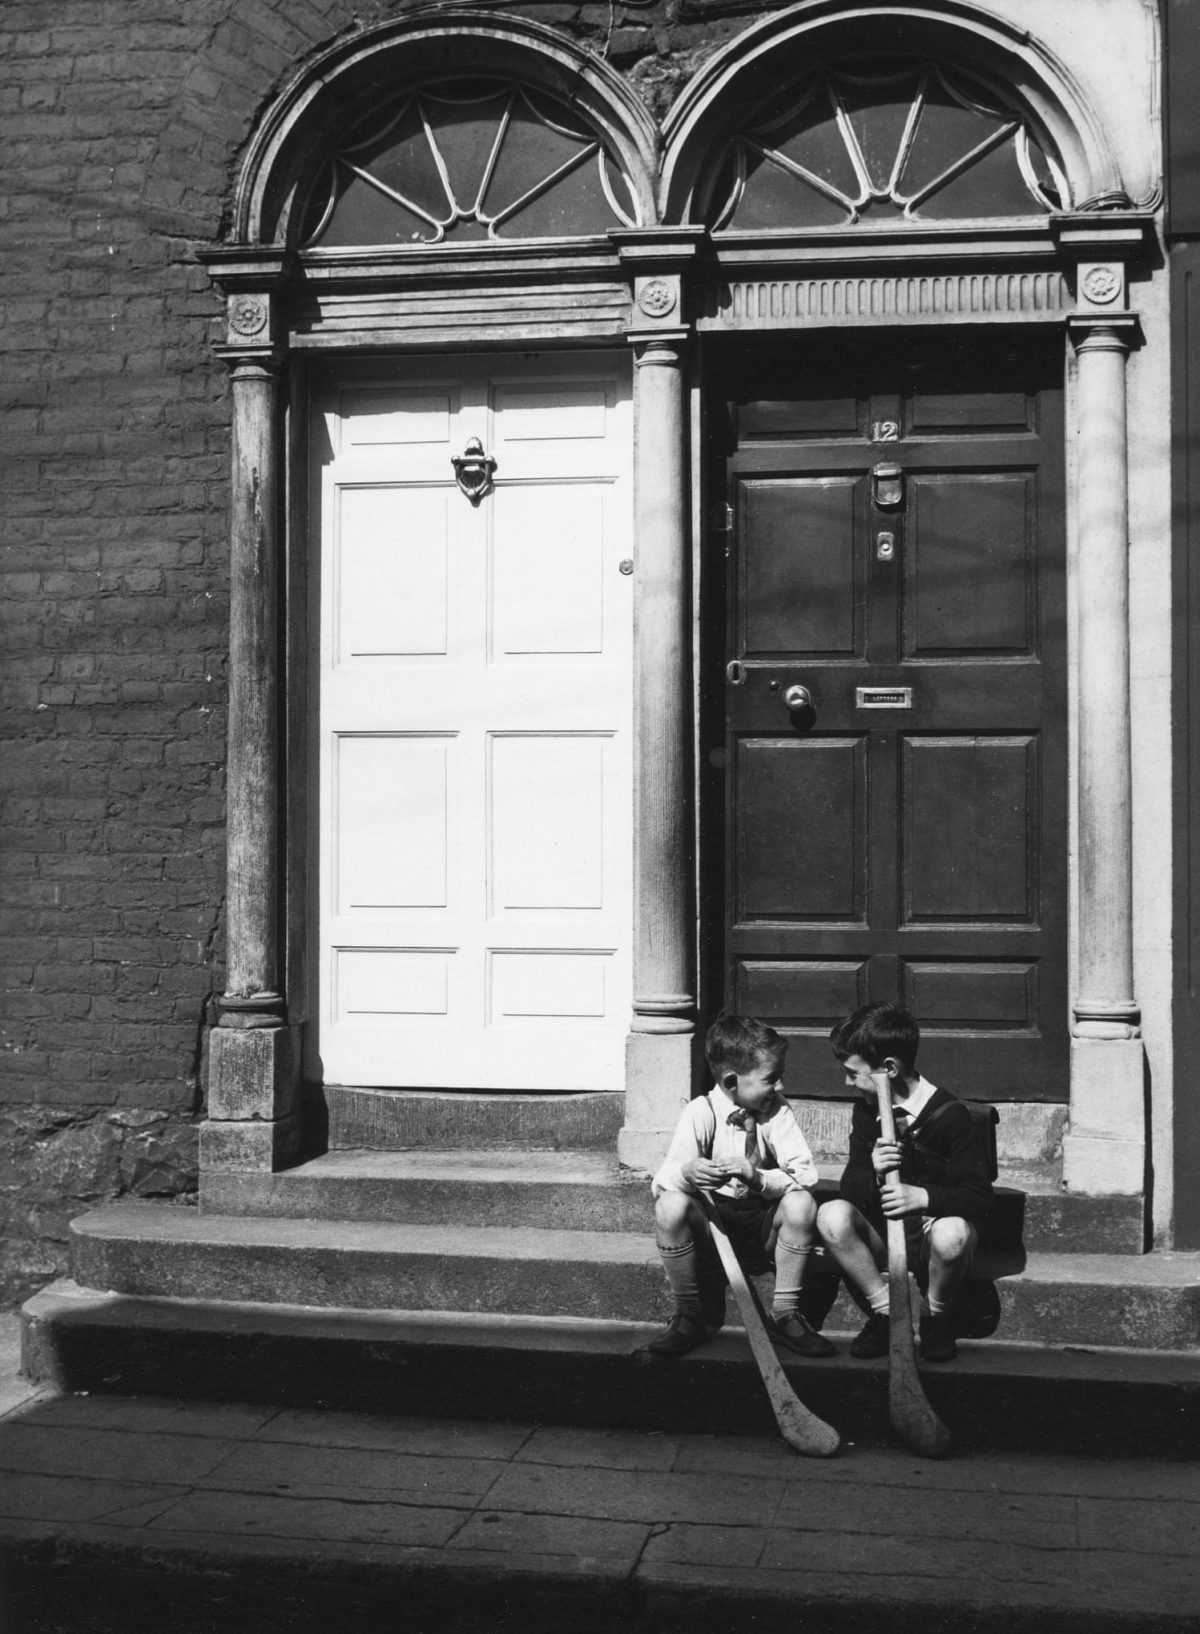 Two boys on a doorstep, Kilkenny, Ireland, 1965.